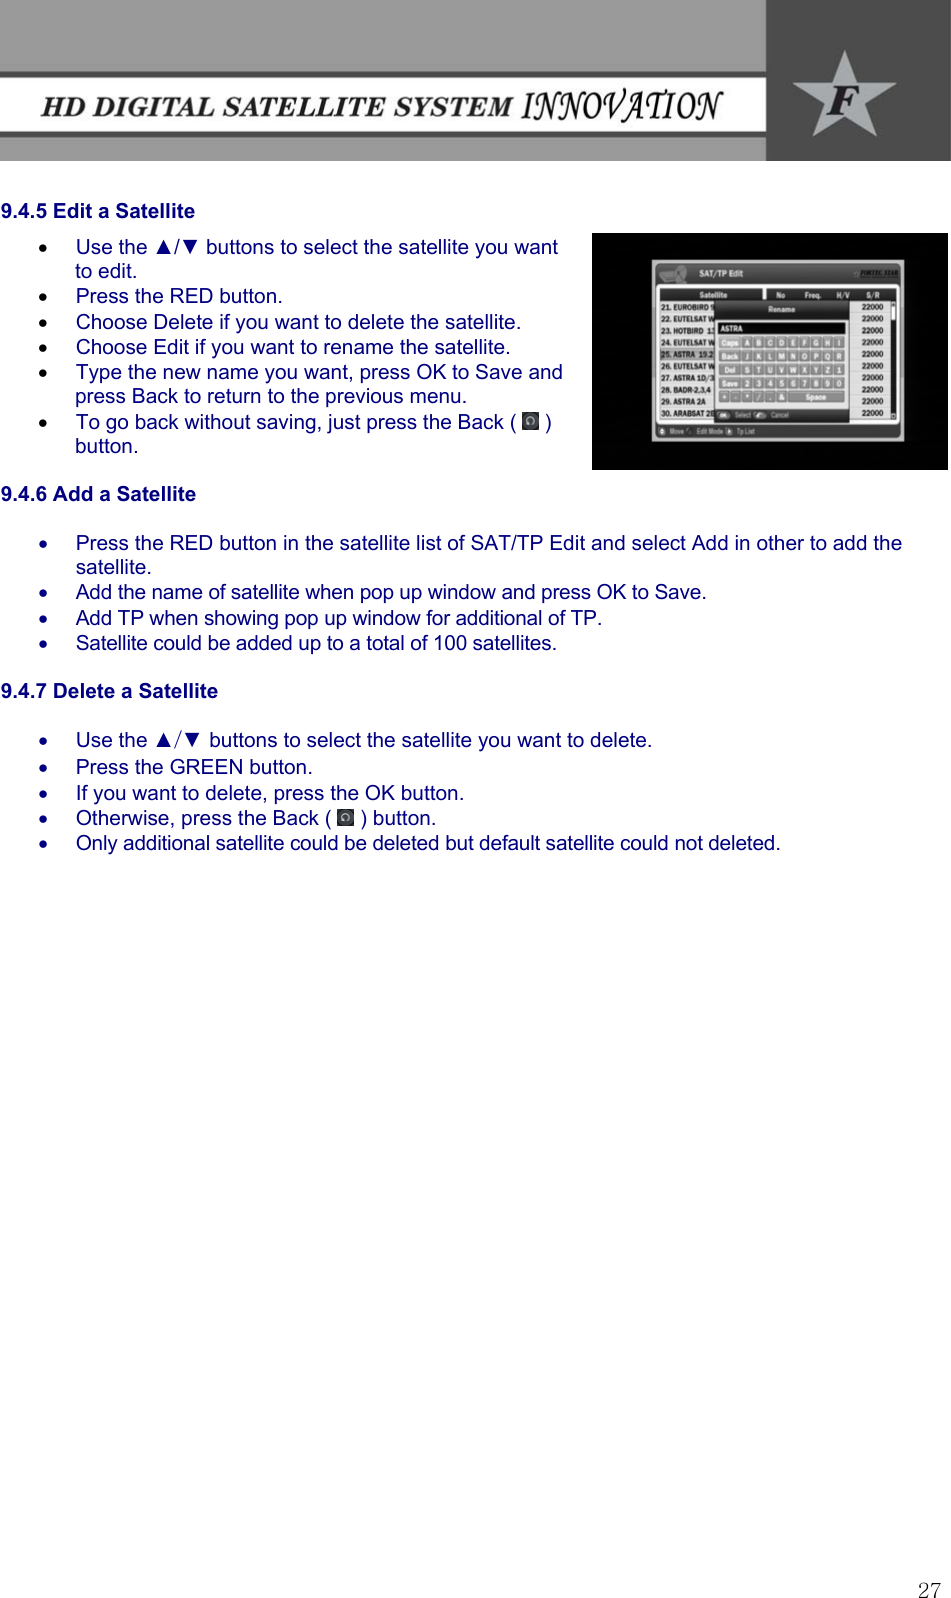 Fortec Satellite Tv System Innovation Users Manual In English